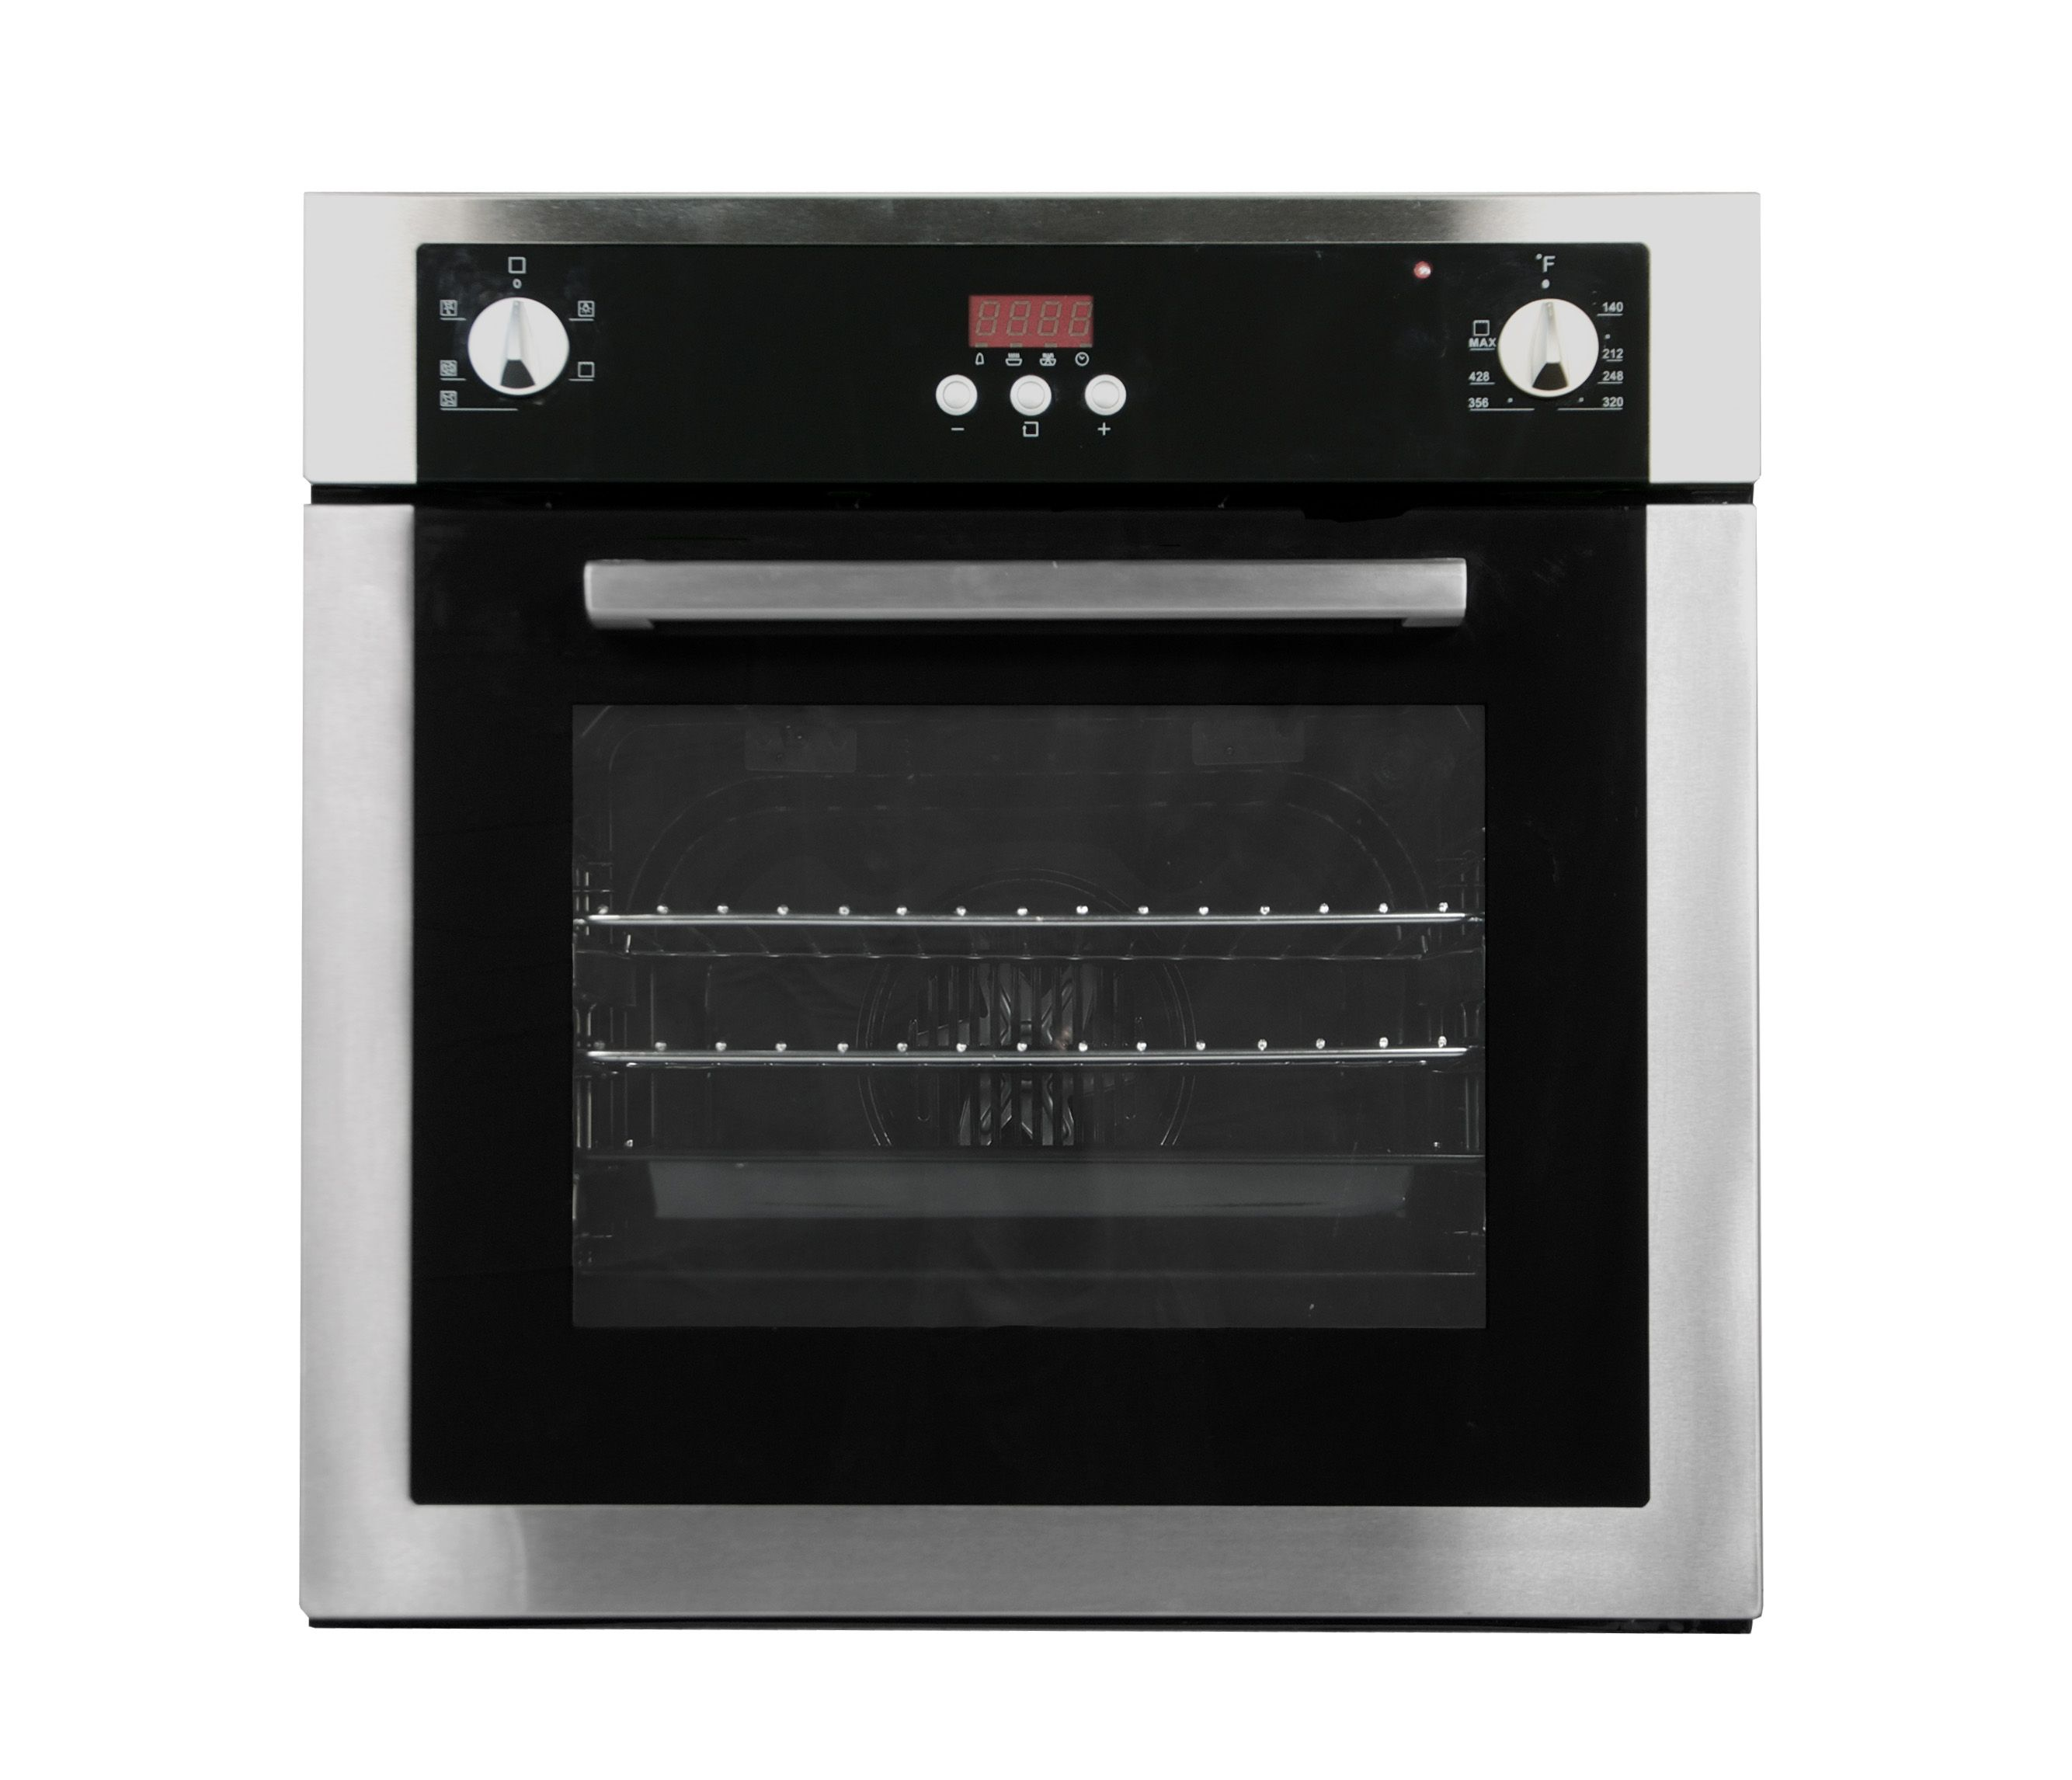 FagorDrop Down Oven